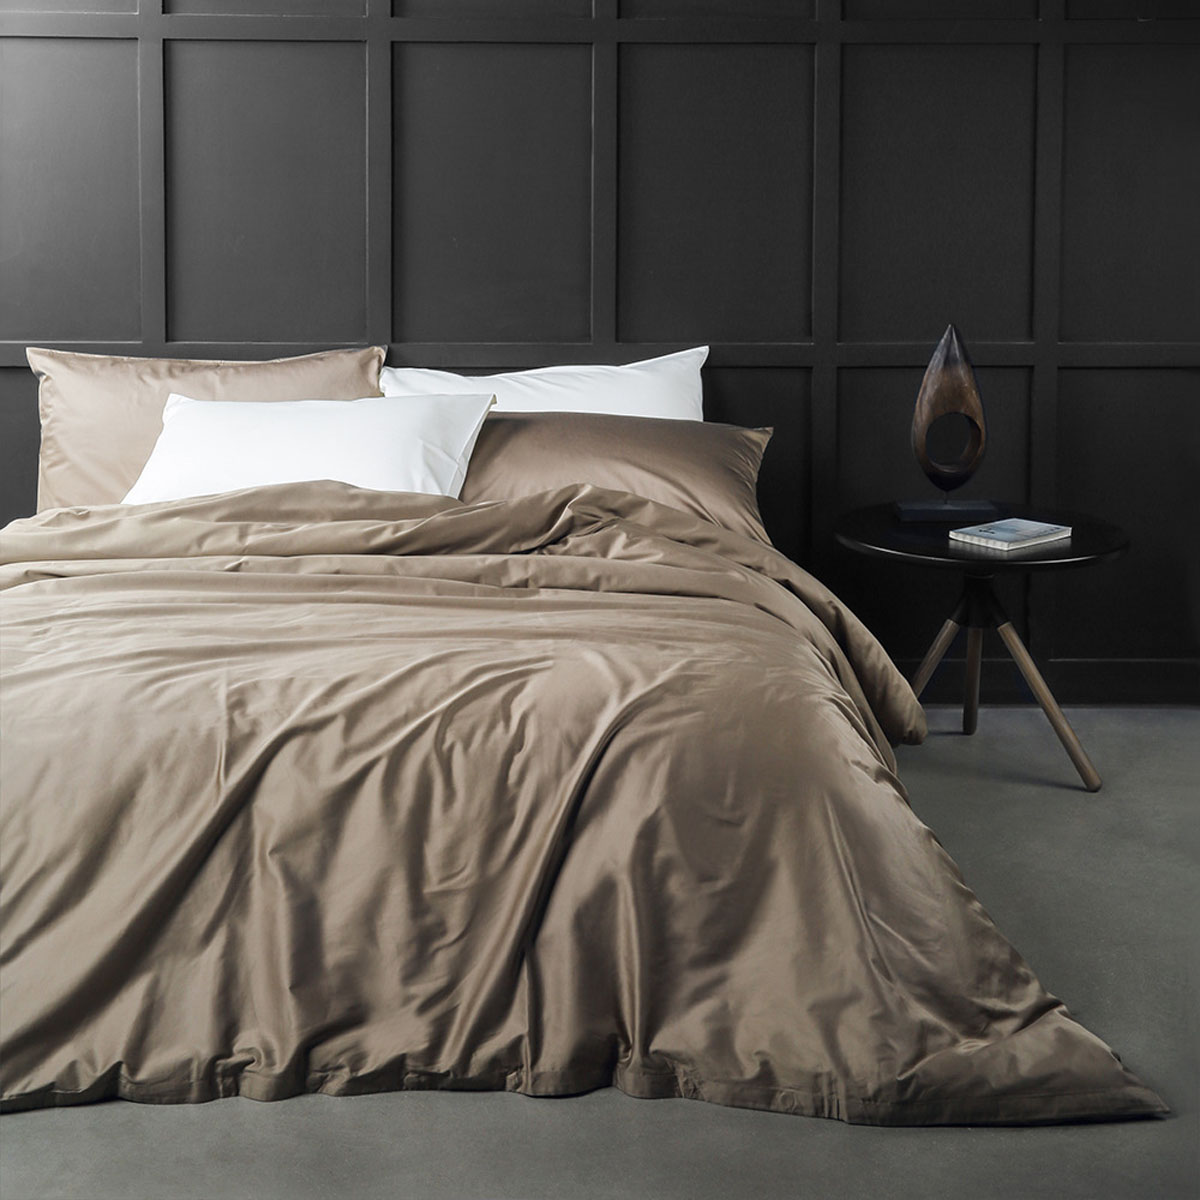 100% USA Cotton 3 Piece Duvet Cover Set (Full/Queen, Brown)